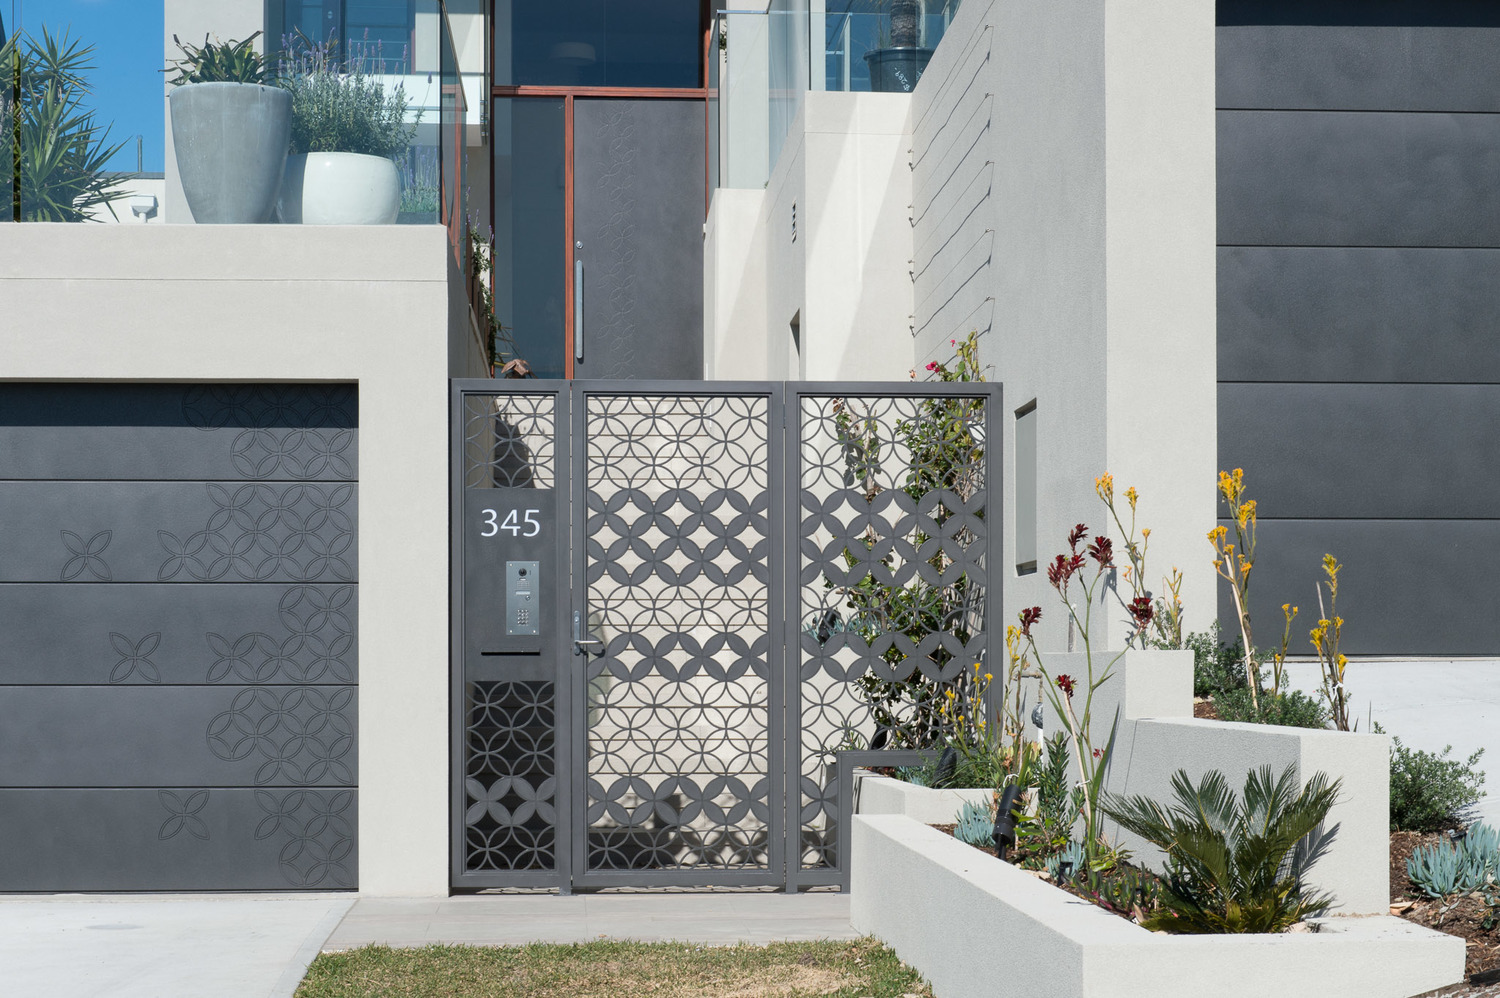 Custom design screen gate by Joanna Lukaszewicz - coated in Graphite Pitted